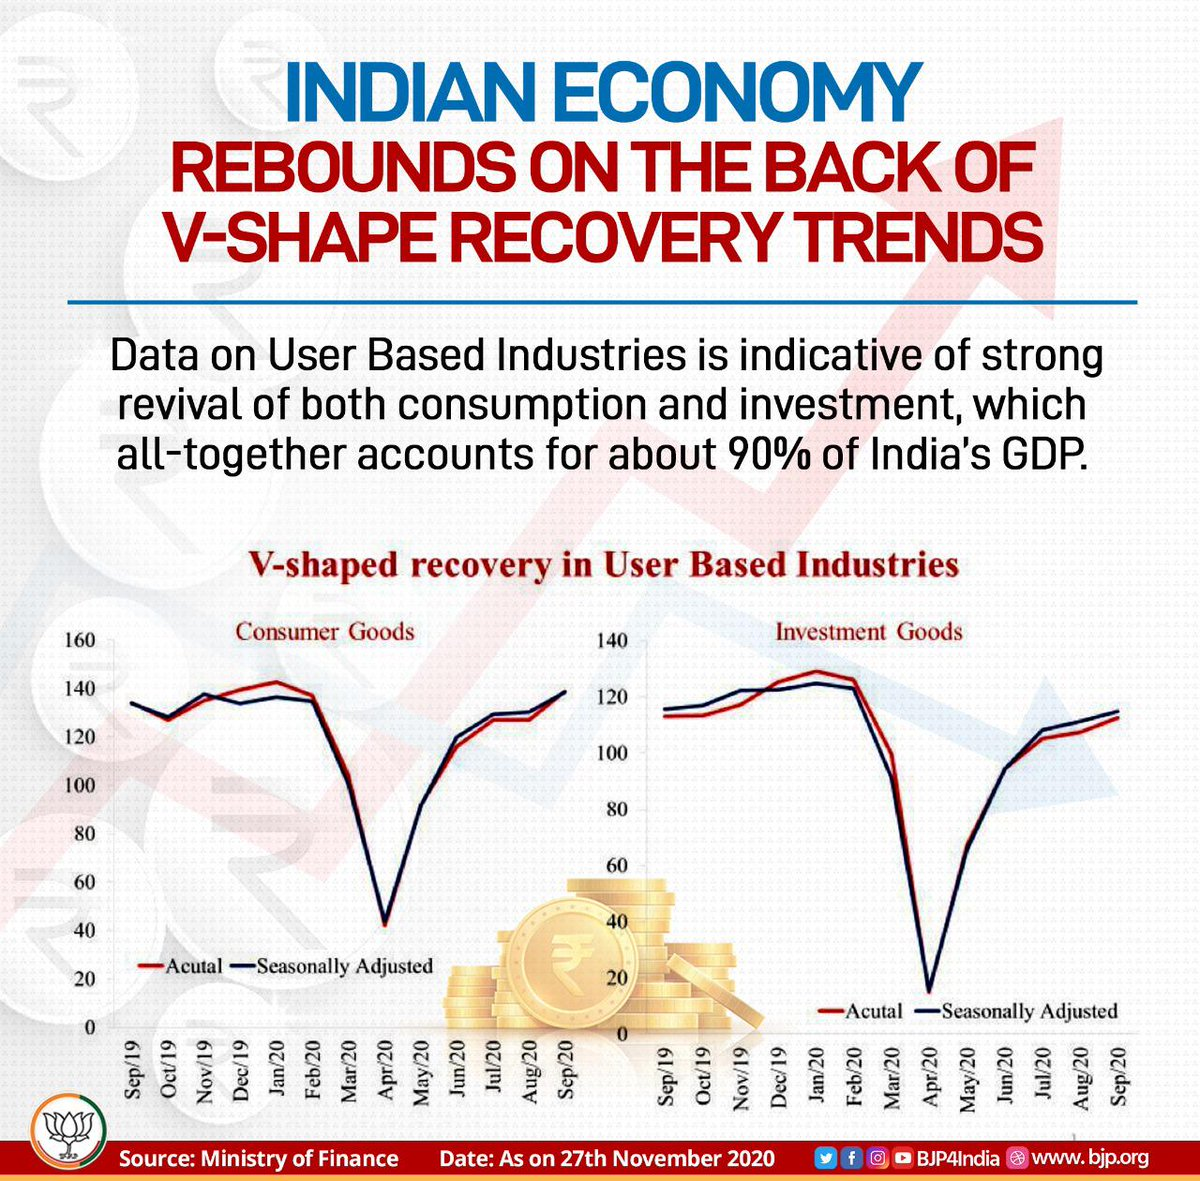 Indian economy rebounds on the back of V-shape recovery trends across the sectors.   Data on User-Based Industries, which account for 90% of GDP, is indicative of strong revival of both consumption and investment.  #EconomyRebounds